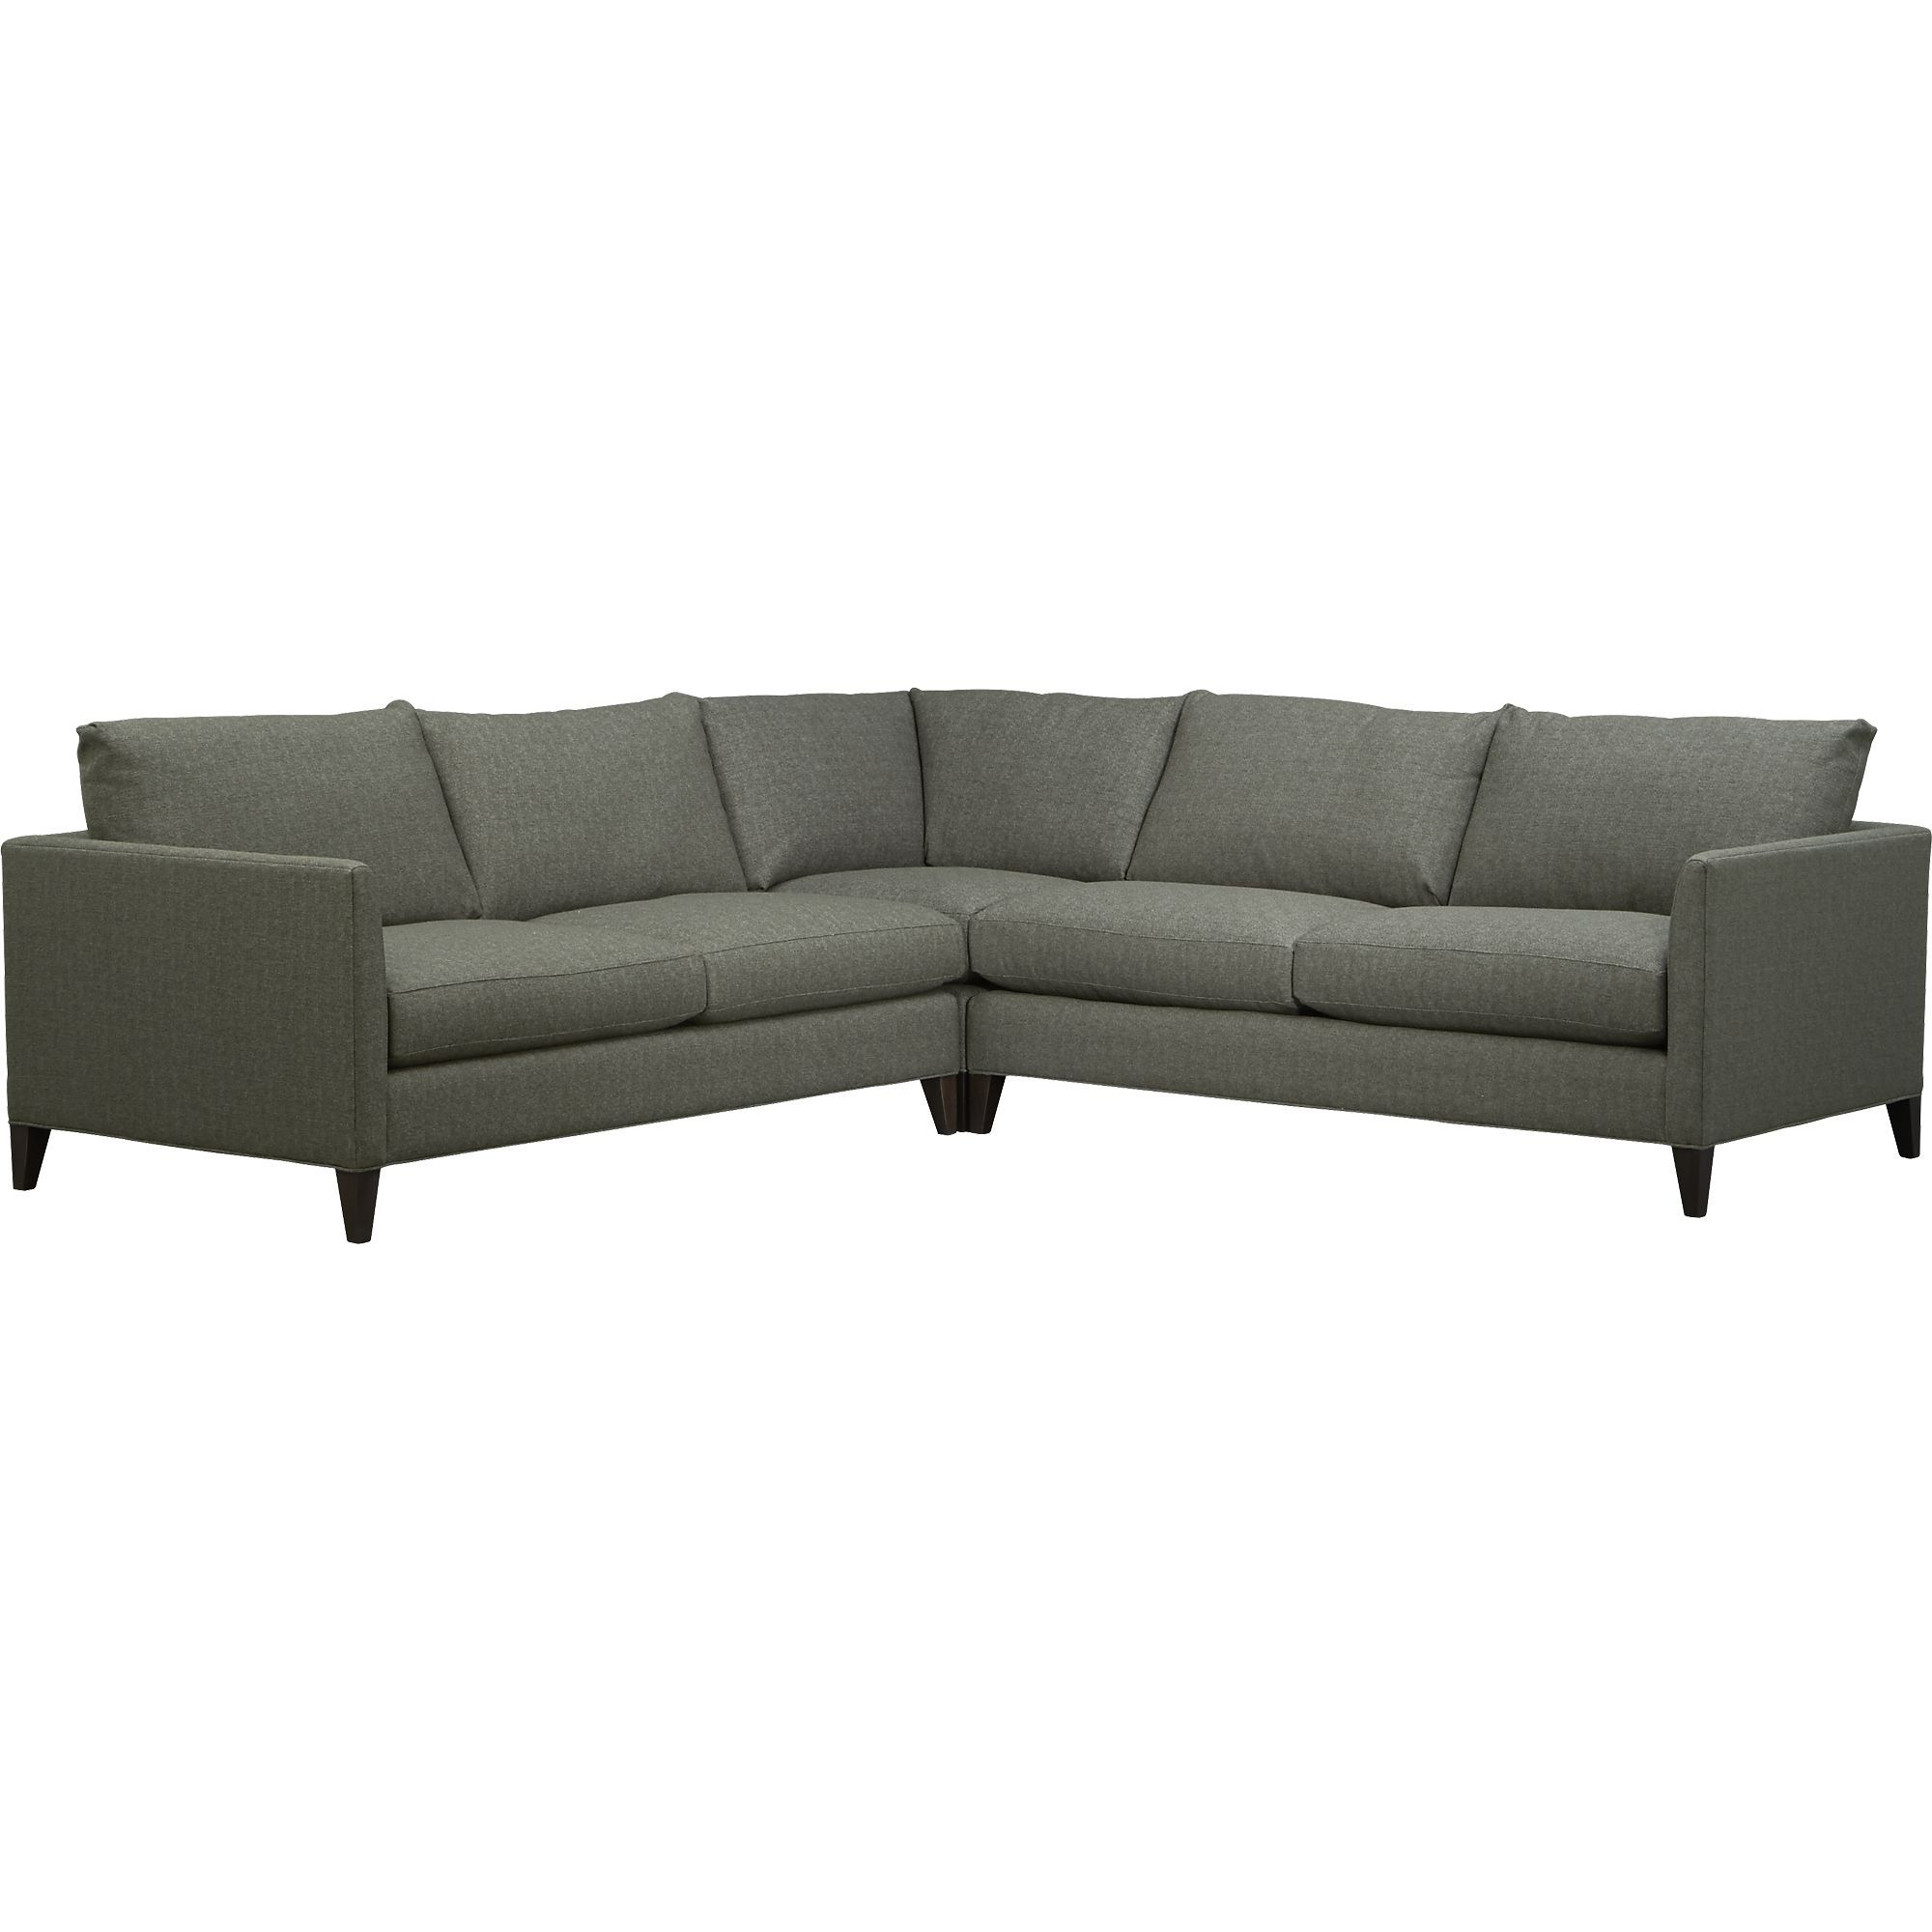 Klyne ii 3 piece corner sectional sofa in sectional sofas crate and barrel